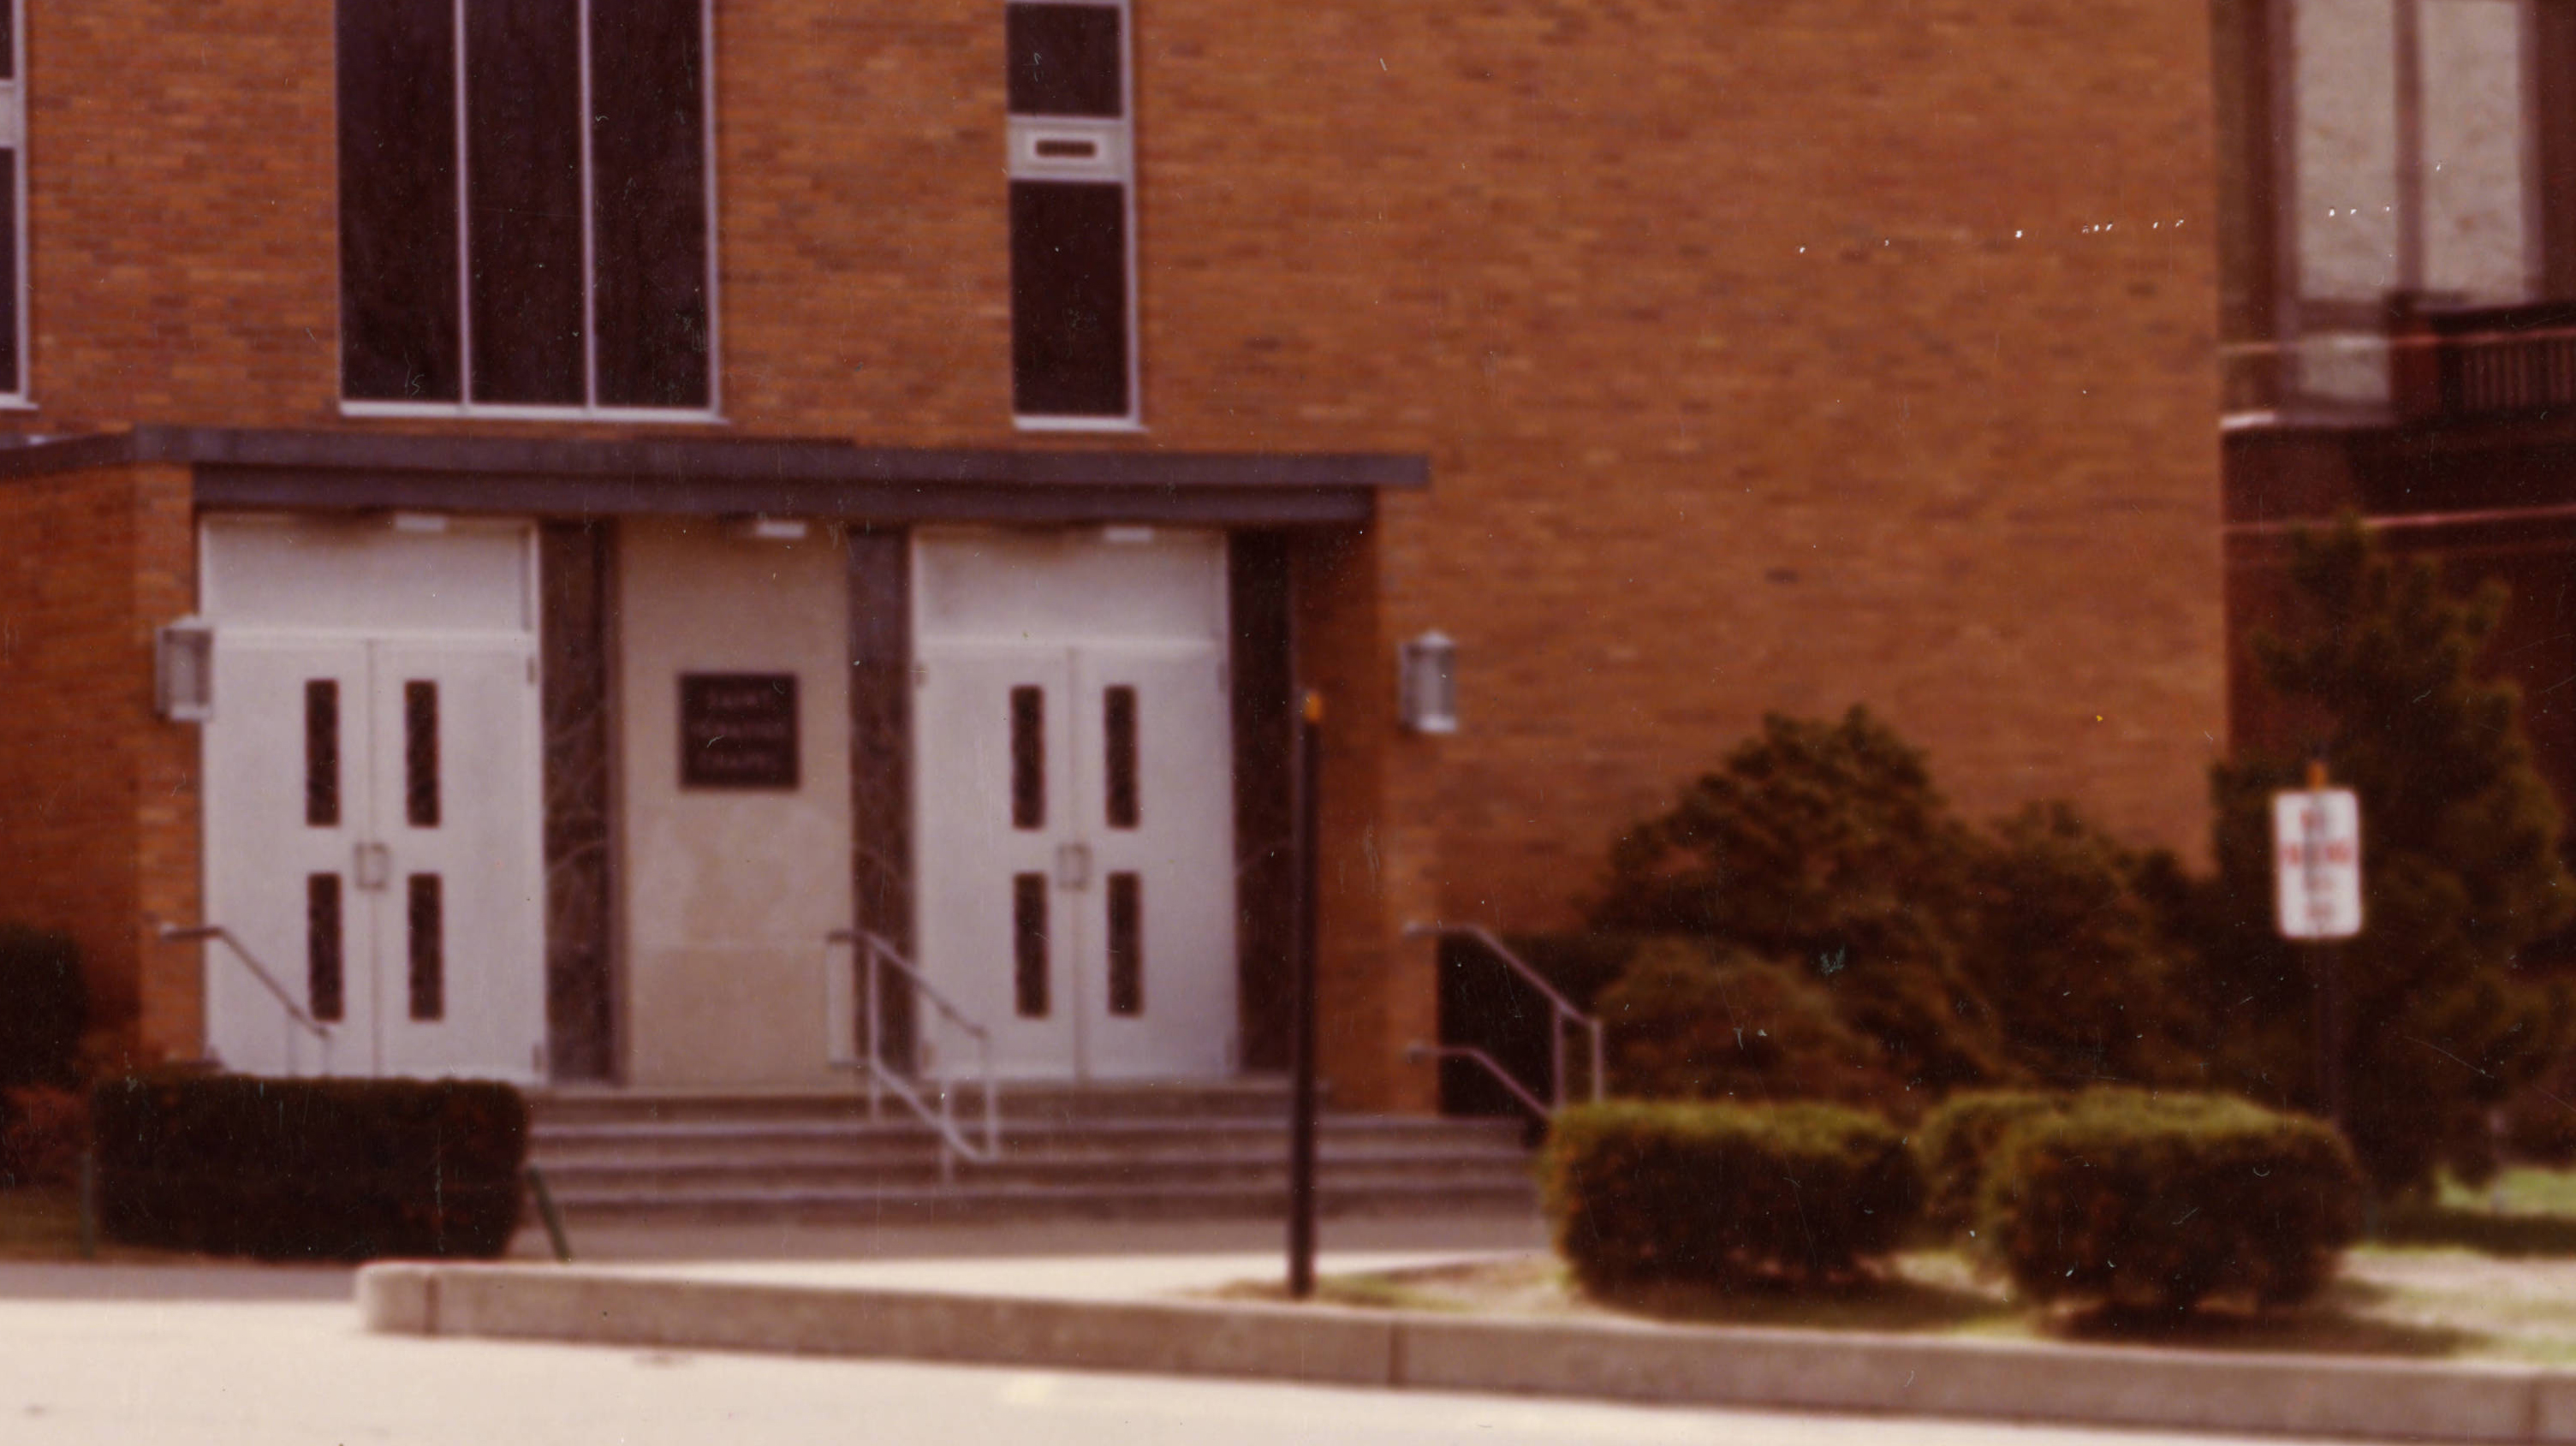 St. Thomas Hall, ca. 1979